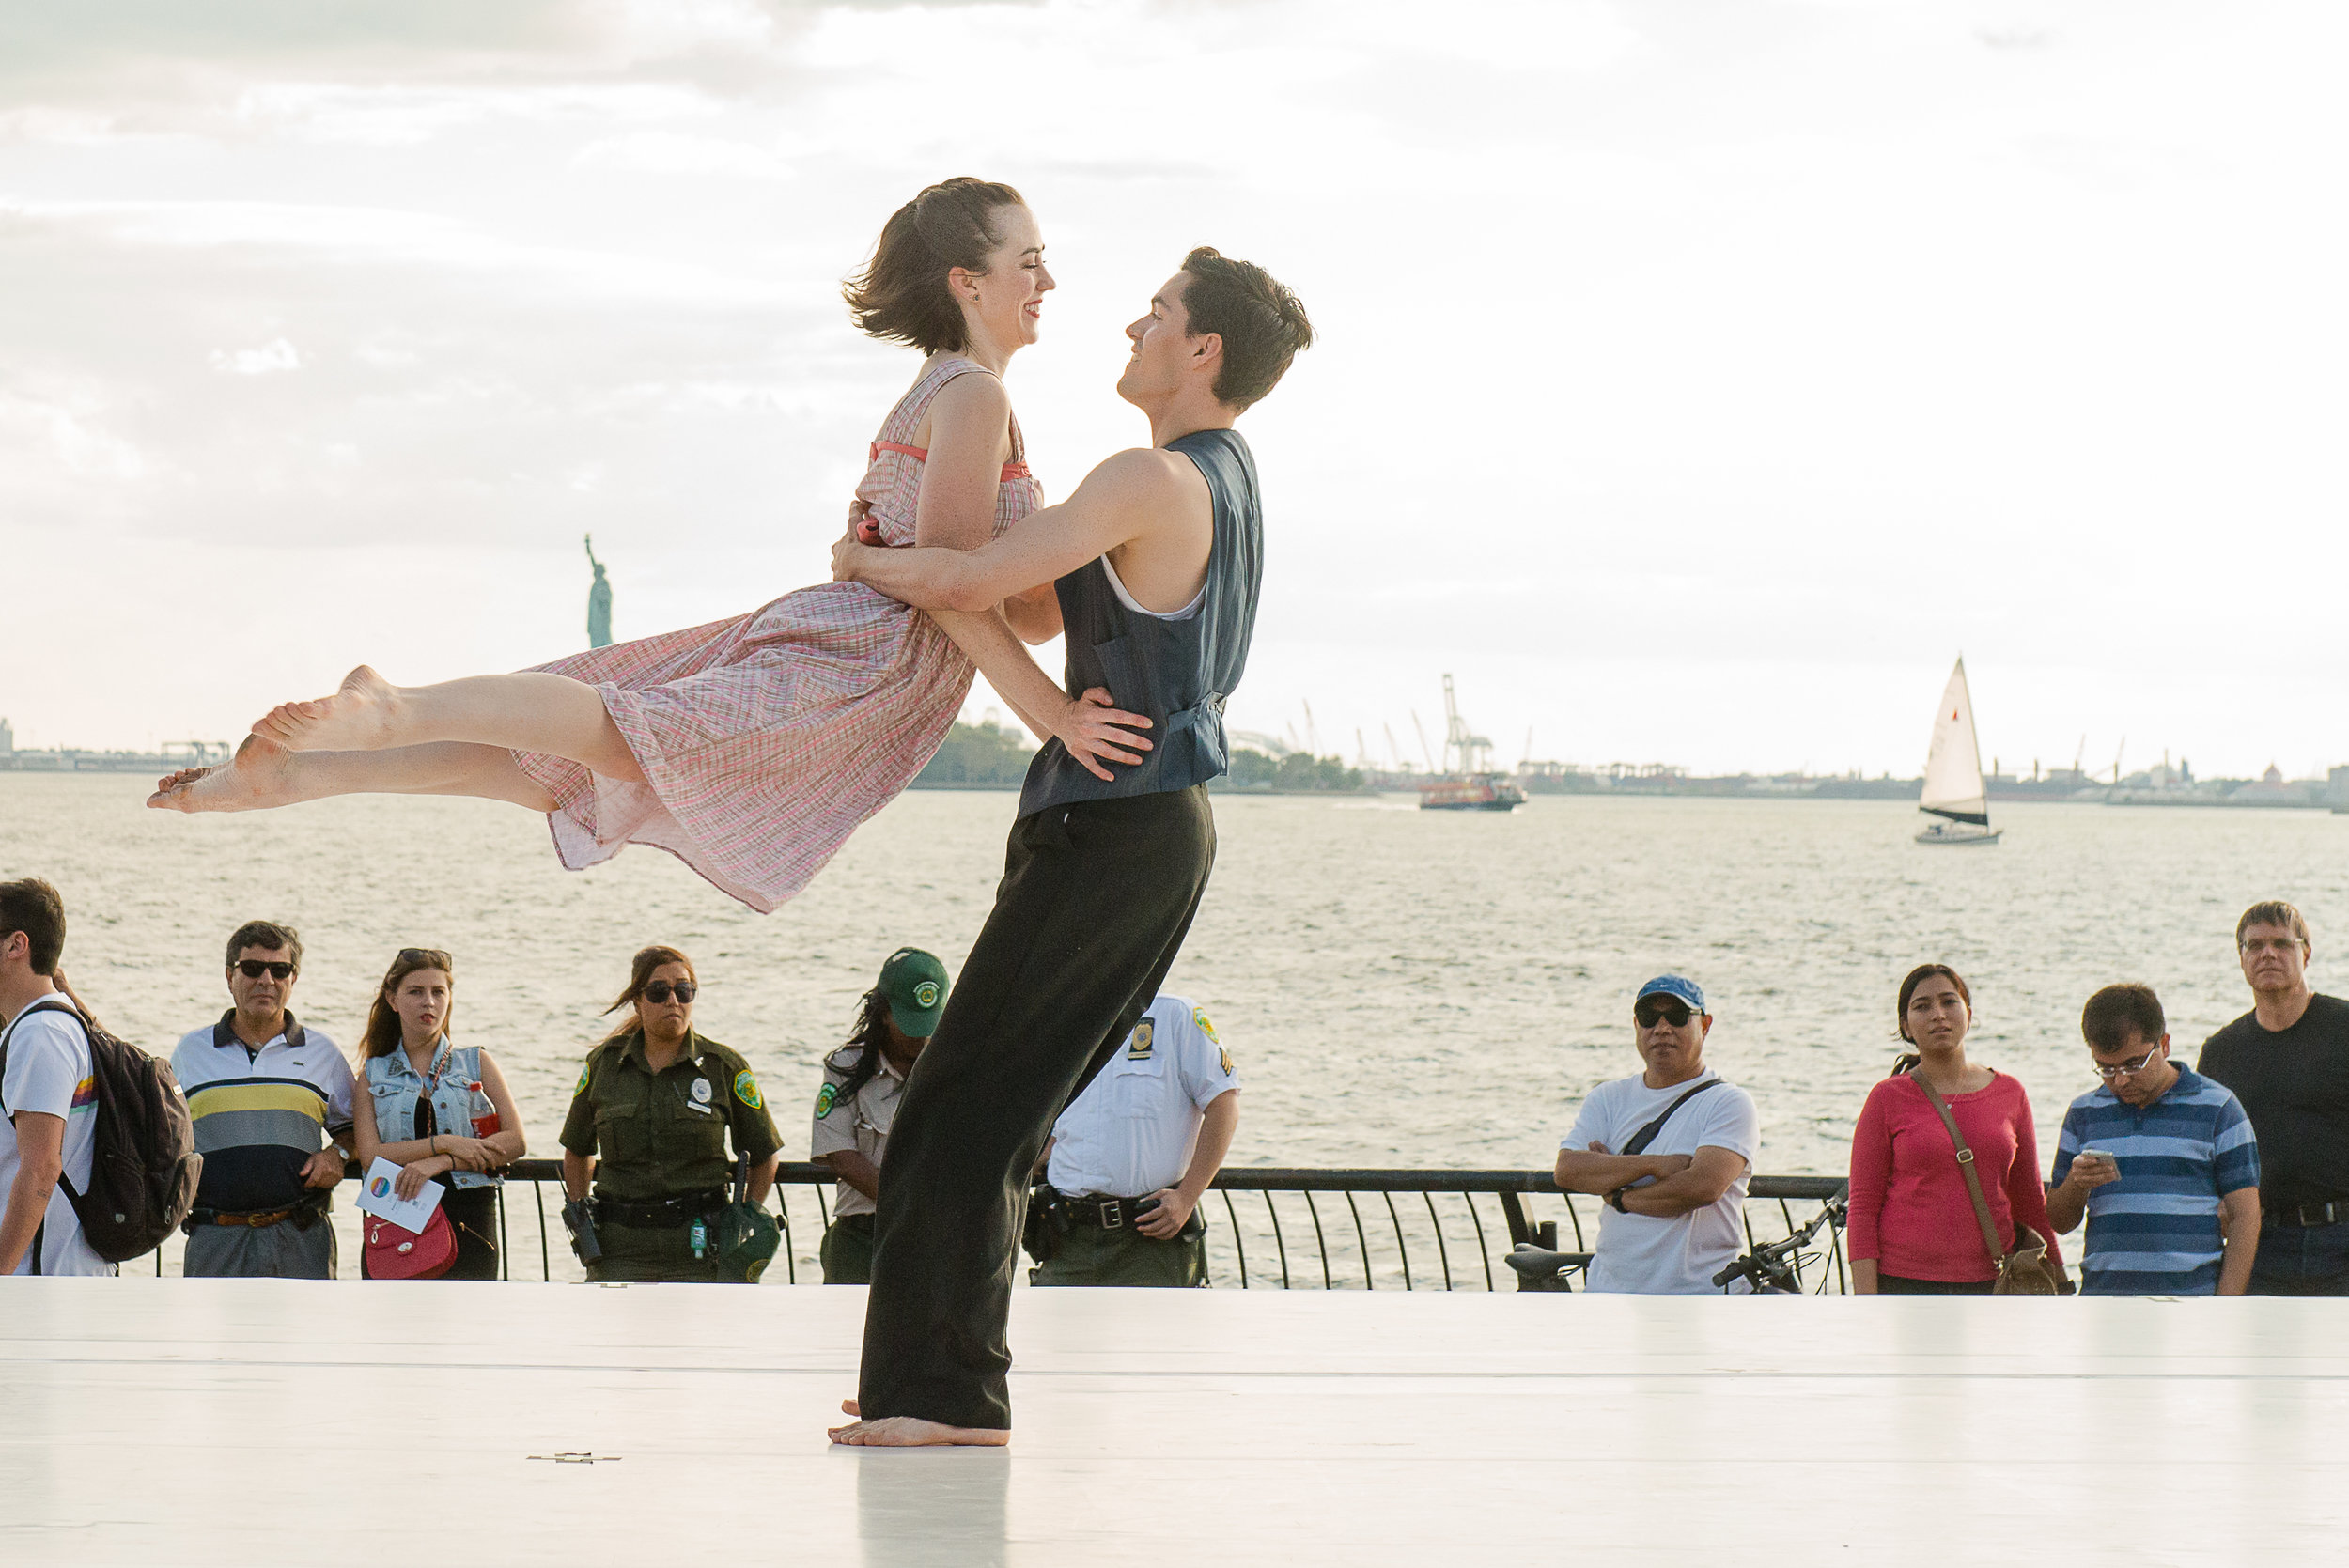 Photo from Turn Turn Turn of dance duo, Samantha and Brian Lawton at the Downtown Dance Festival at Battery Park, 2014. Photographed by Dariel Sneed.